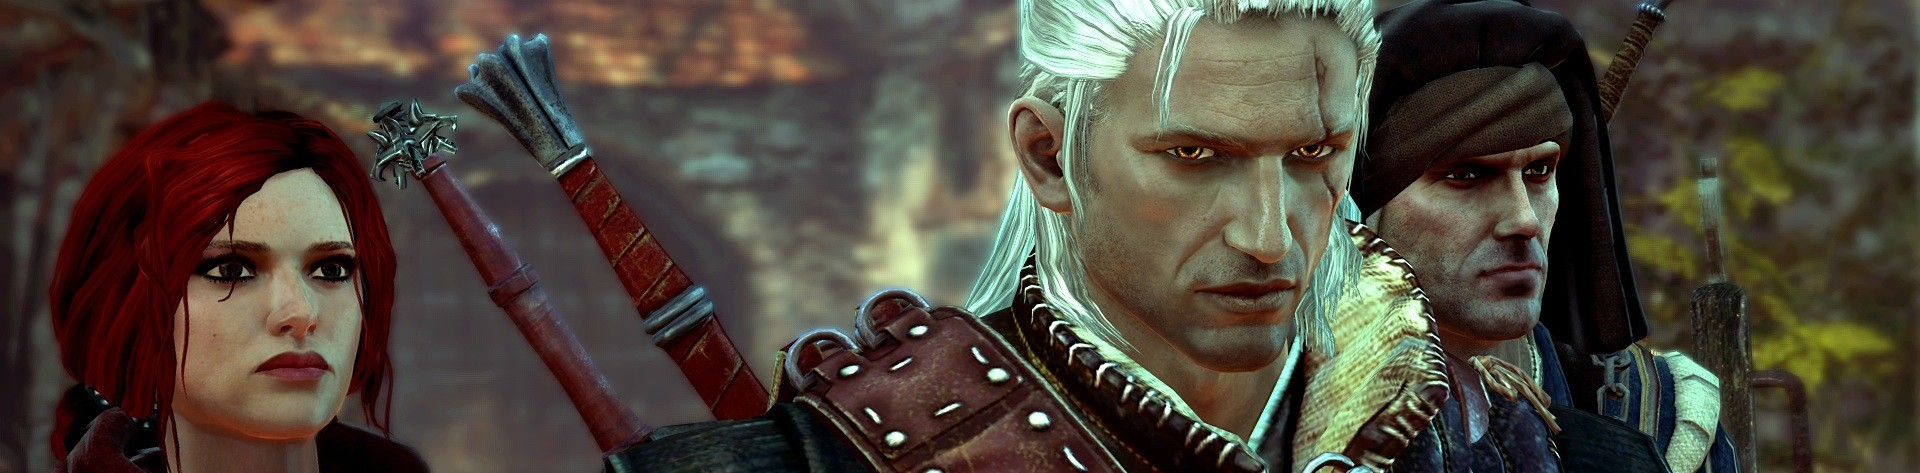 The Witcher 2 - Assassins of Kings 3